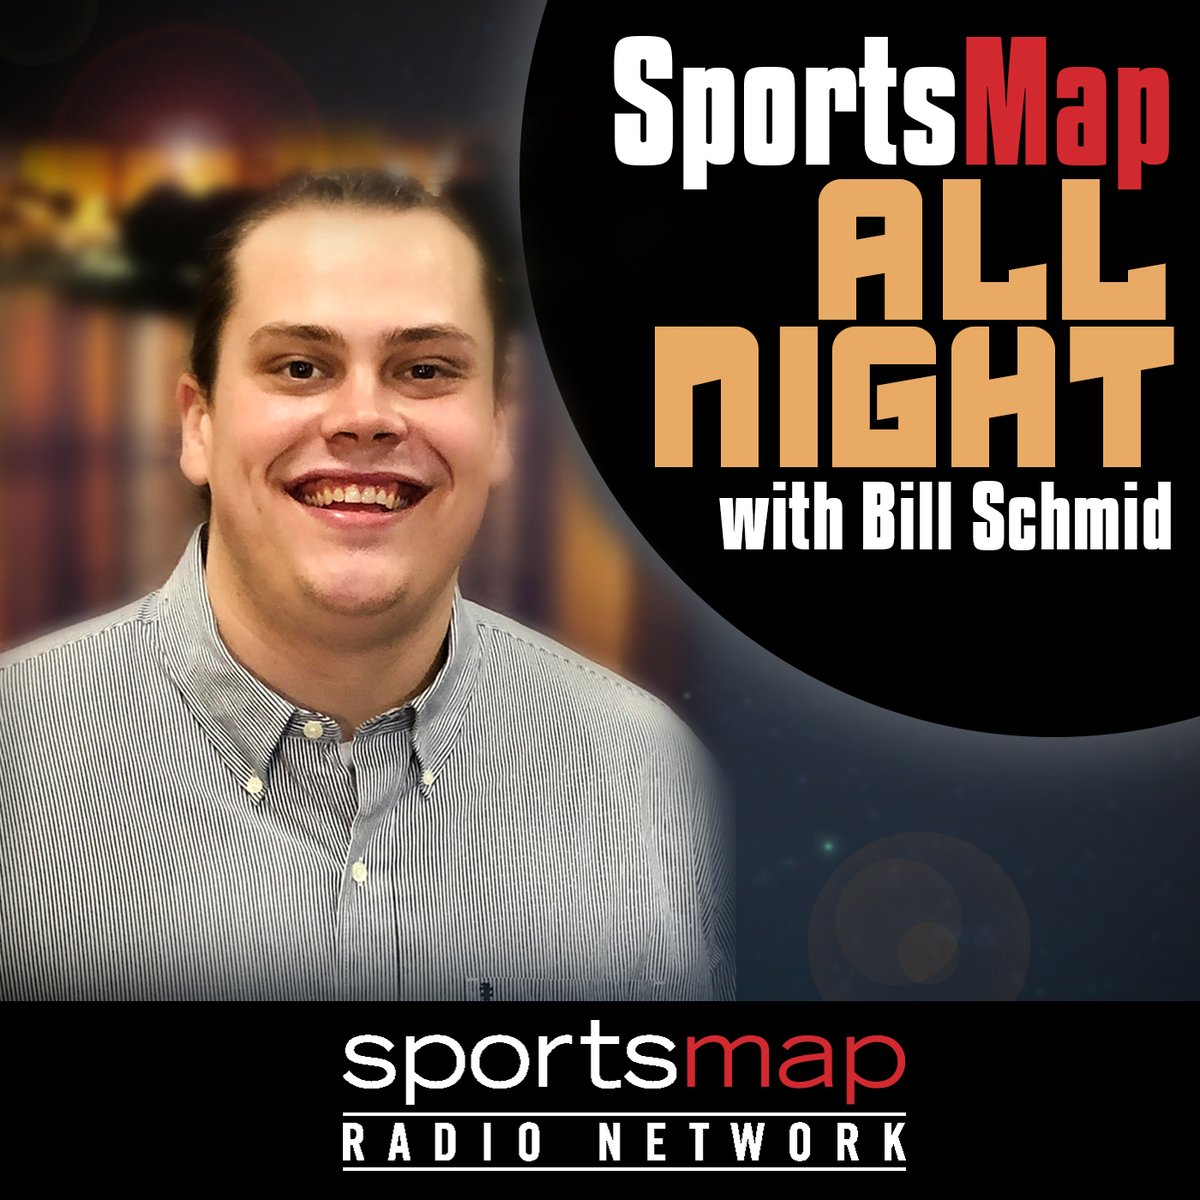 Hour 3 of #SportsMapAllNight w/ @BillSchmidRadio is LIVE!  📞: 1-800-224-2004  This hour: - Brady's keys to a #GoBucs victory over the #Saints - Can the #Browns pull off another upset? - Our picks for all of the #DivisionalRound matchups  LISTEN LIVE: